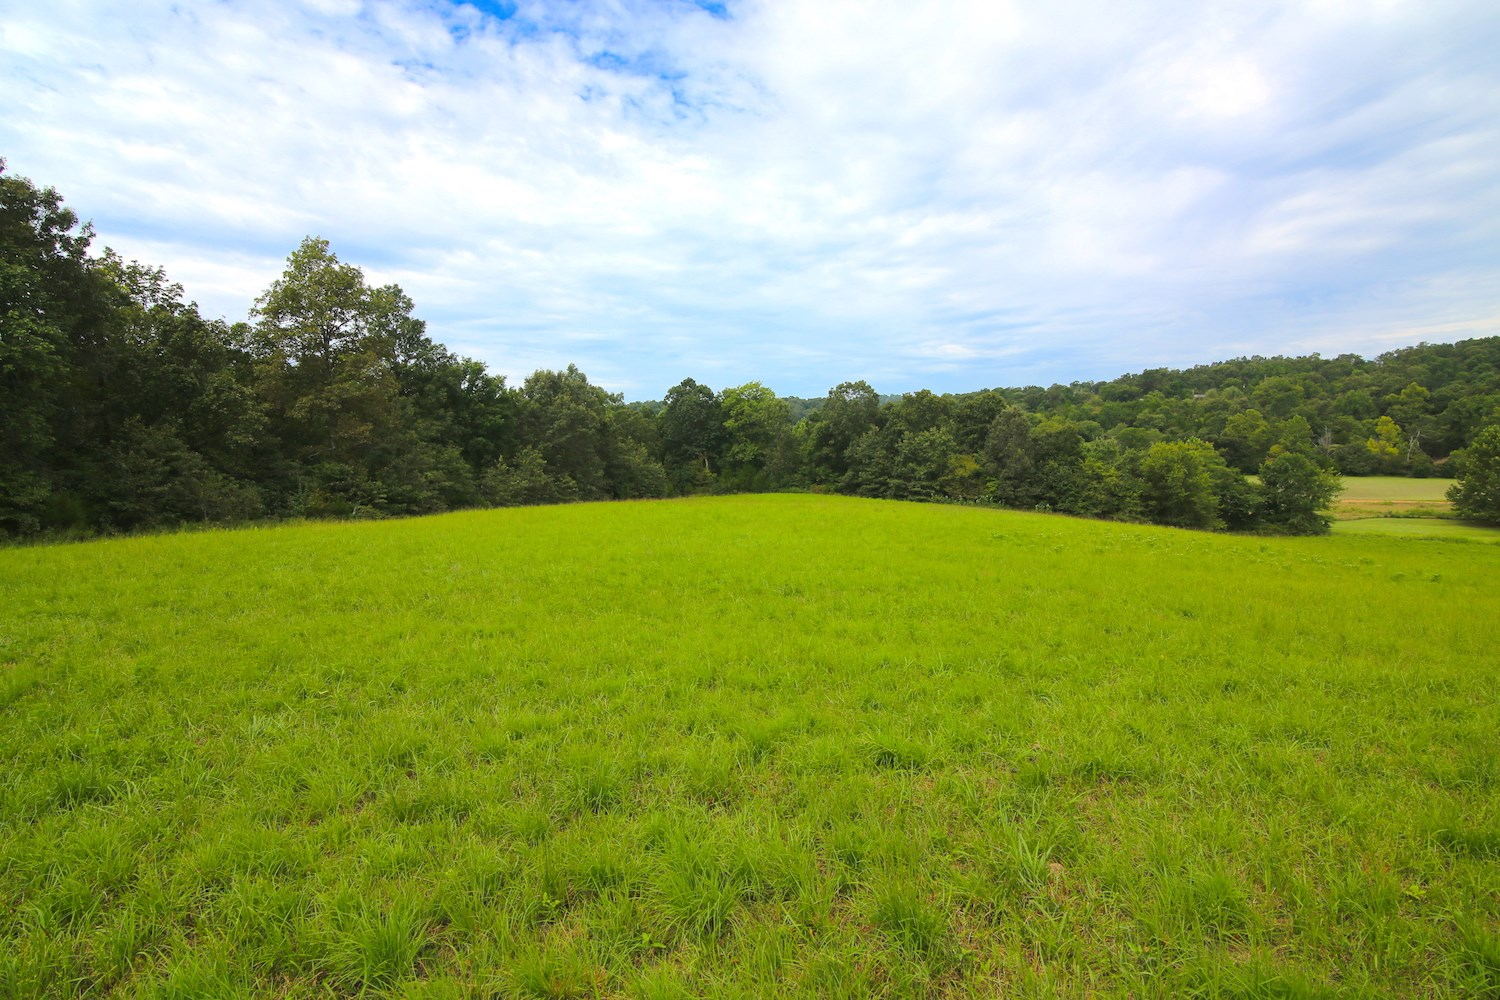 Land for Sale w/ Creek Frontage & Spring River Access in AR